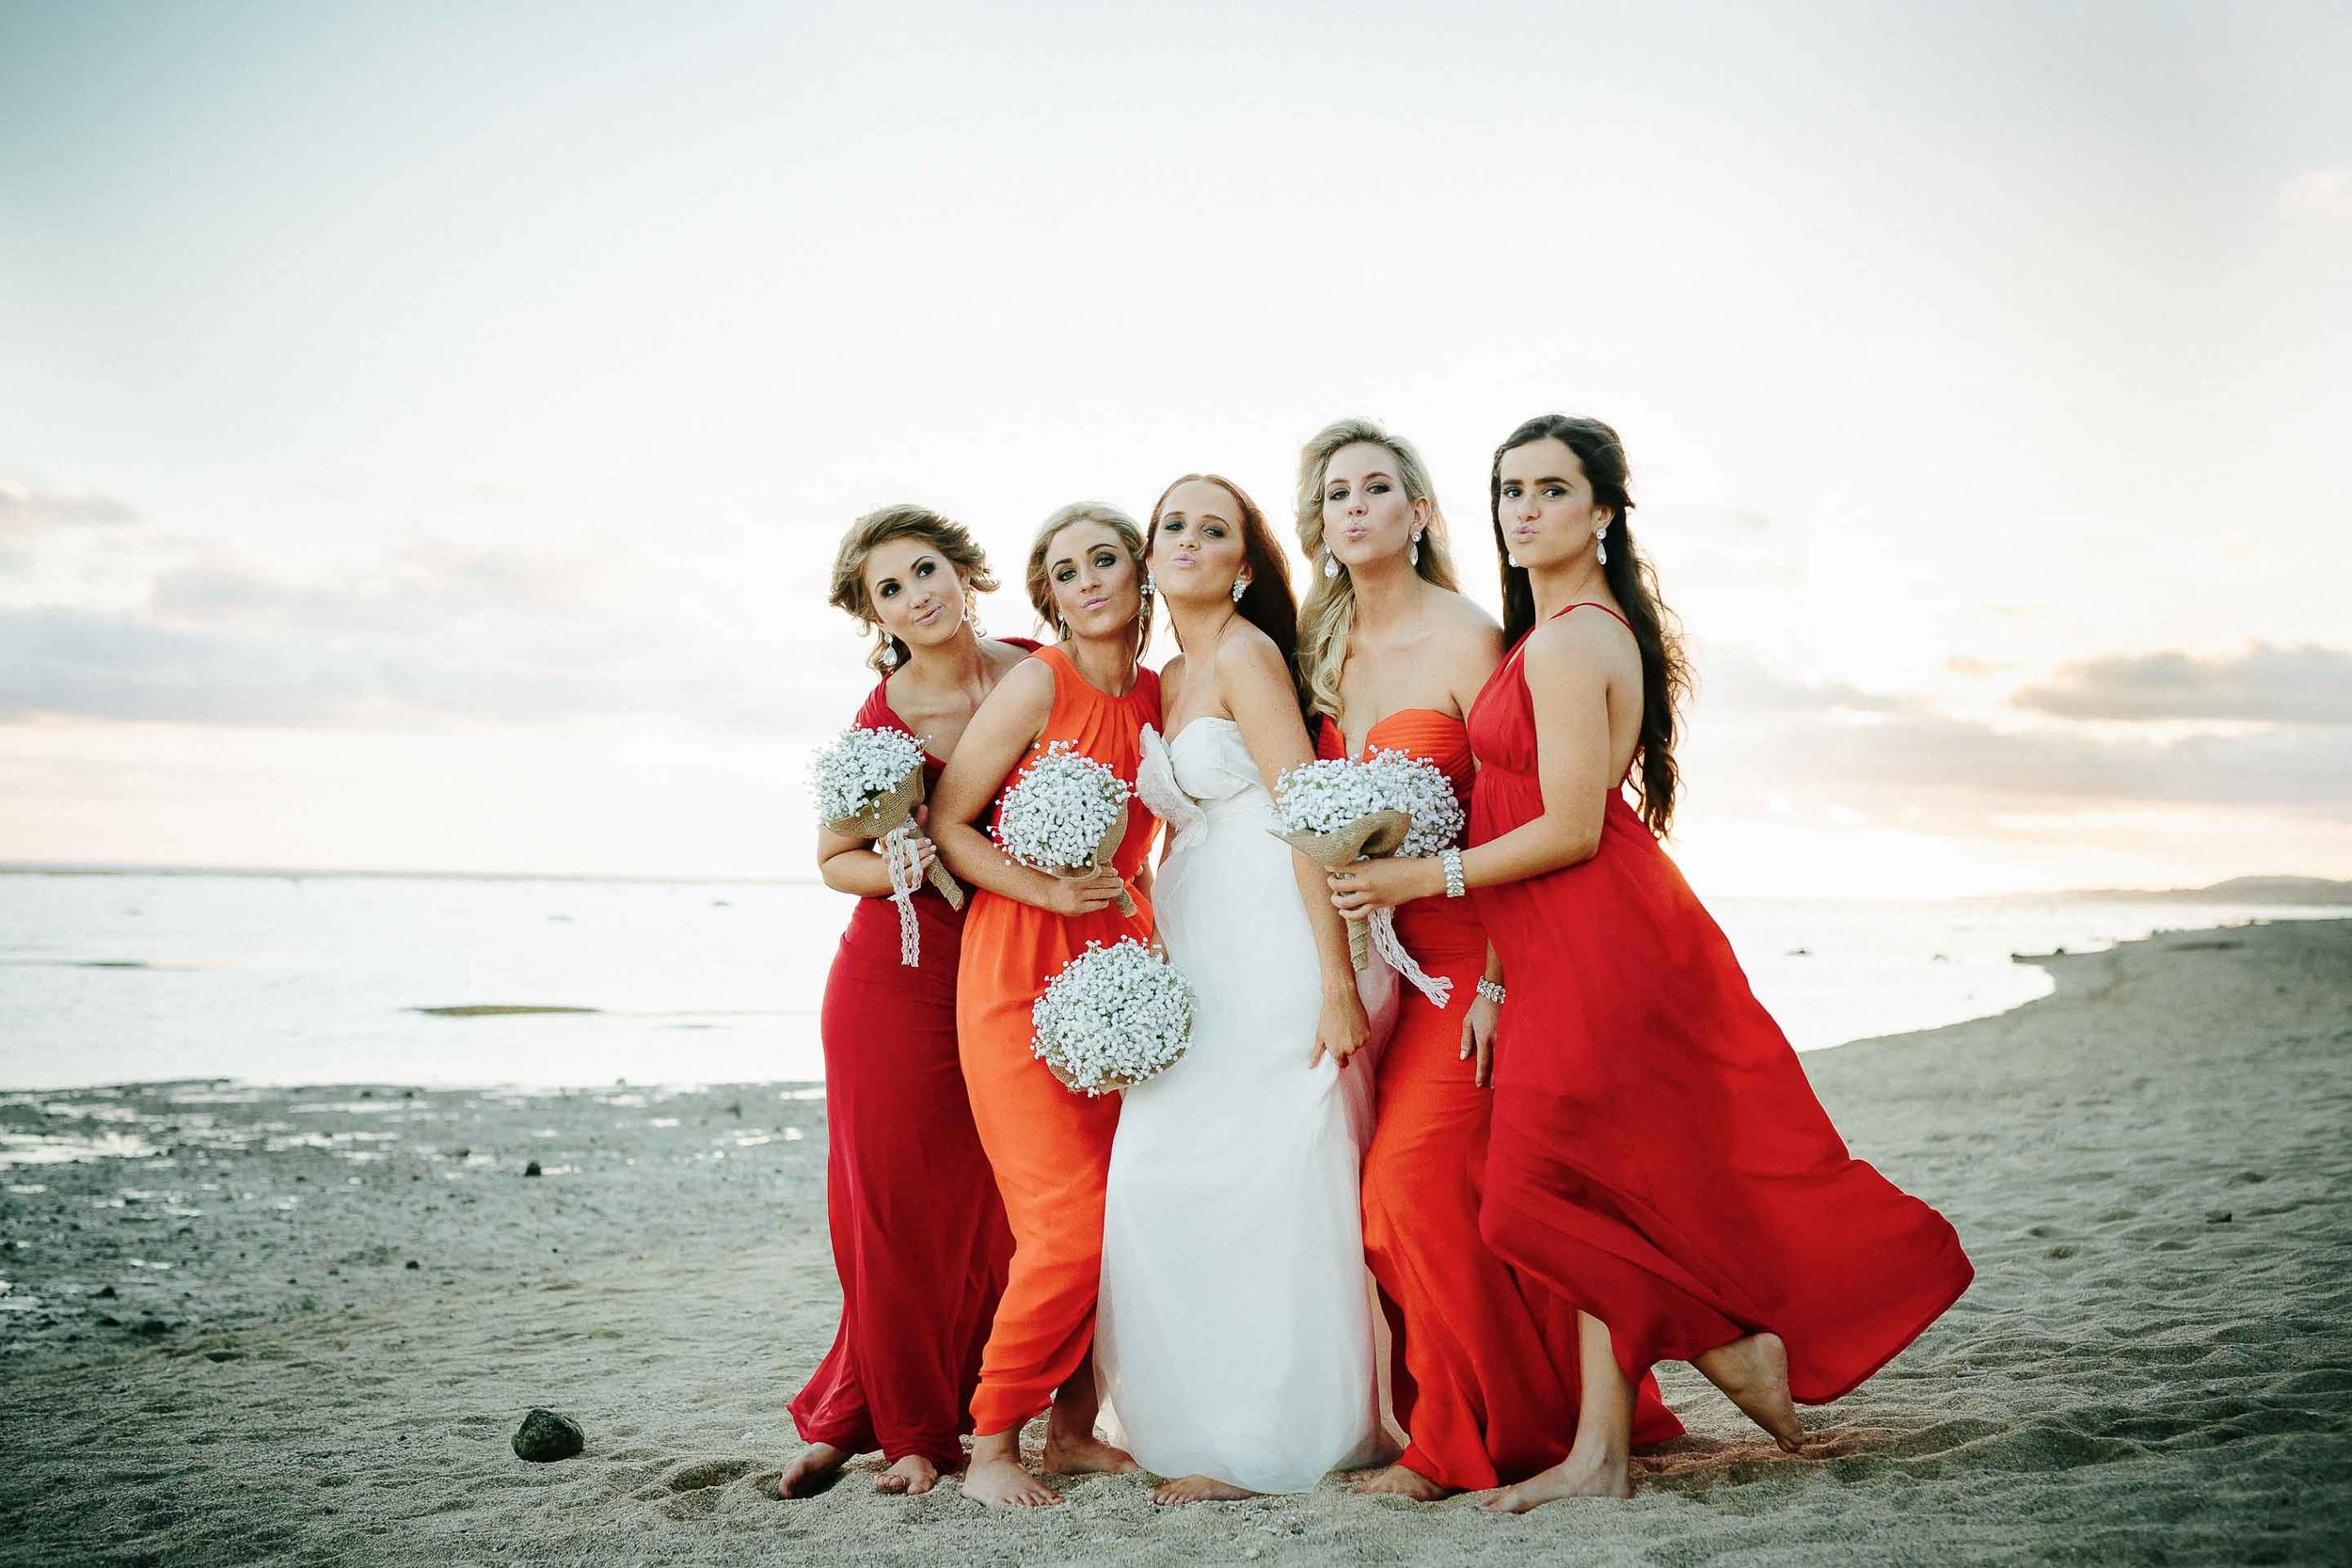 bride and bridesmaids pulling a funny face on the beach at sunset